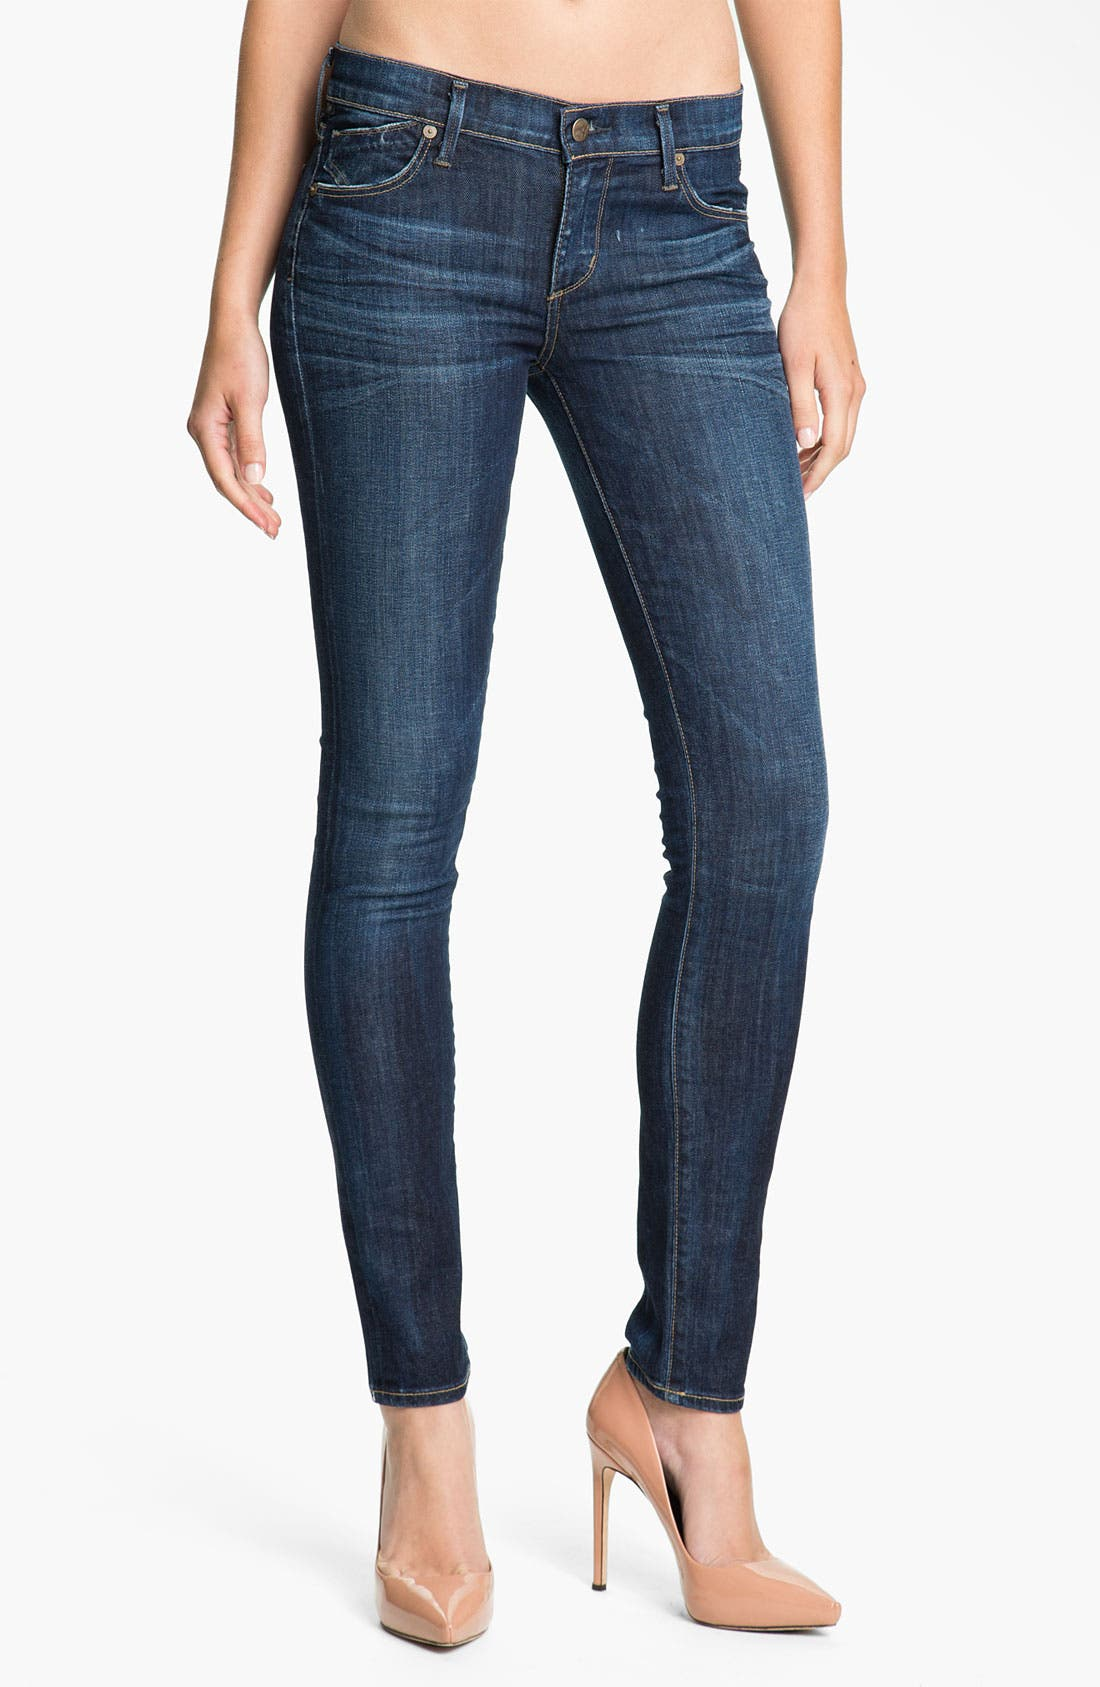 Alternate Image 1 Selected - Citizens of Humanity Skinny Stretch Jeans (Spectrum)